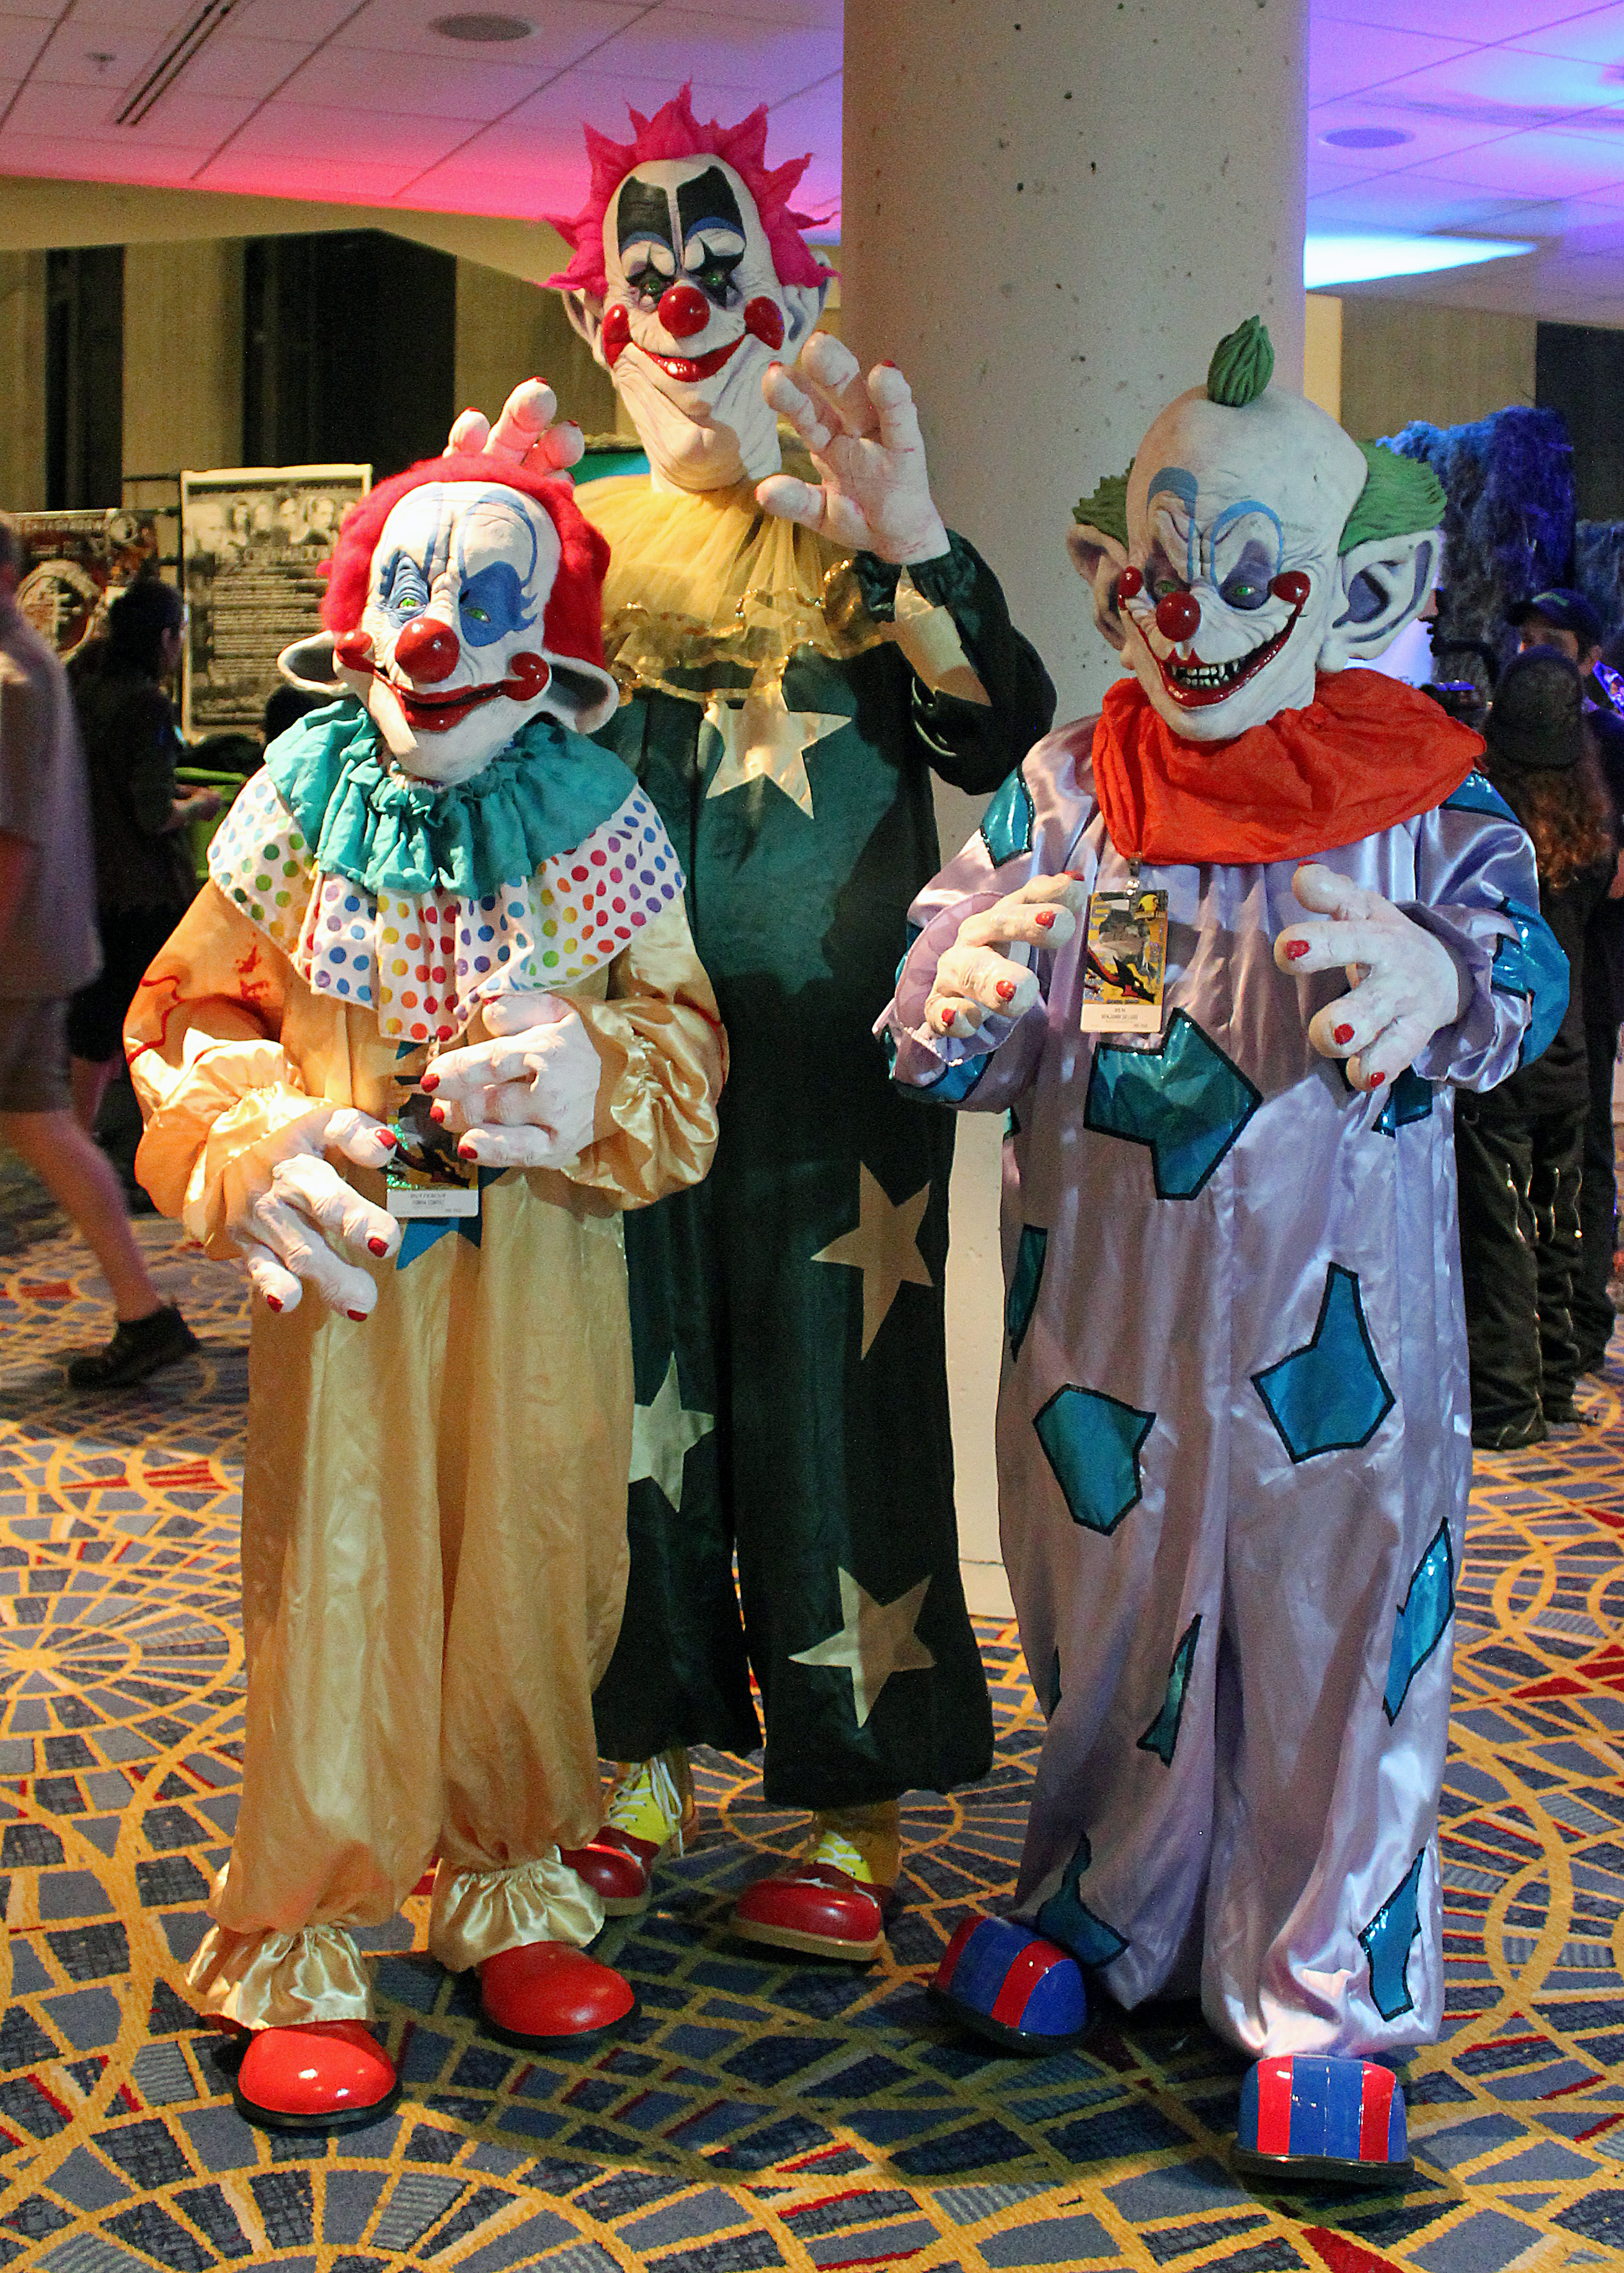 File:Dragon_Con_2014_ _Killer_Klowns_from_Outer_Space_(15013717604) on Halloween 2014 Wallpaper